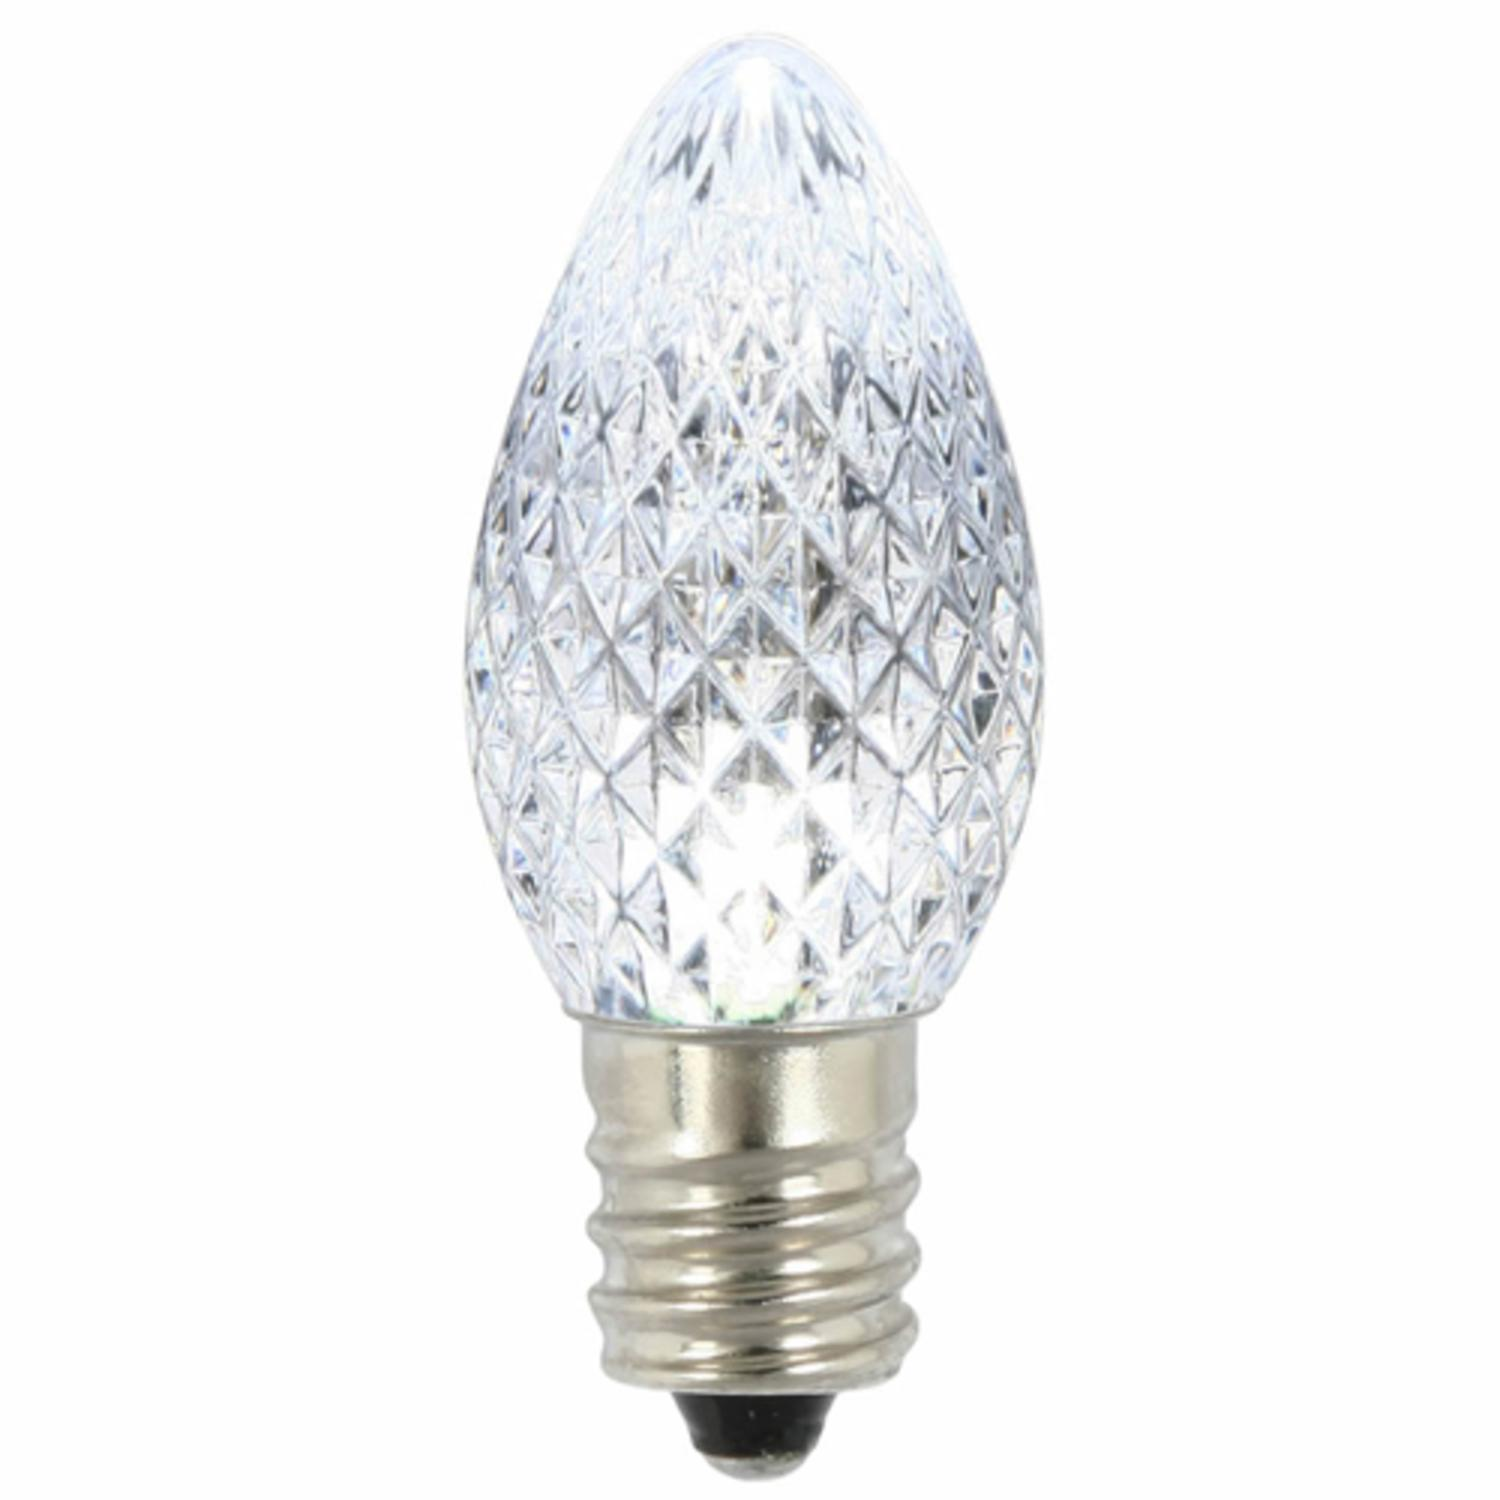 Pack of 25 LED C7 Pure White Twinkle Replacement Christmas Light Bulbs